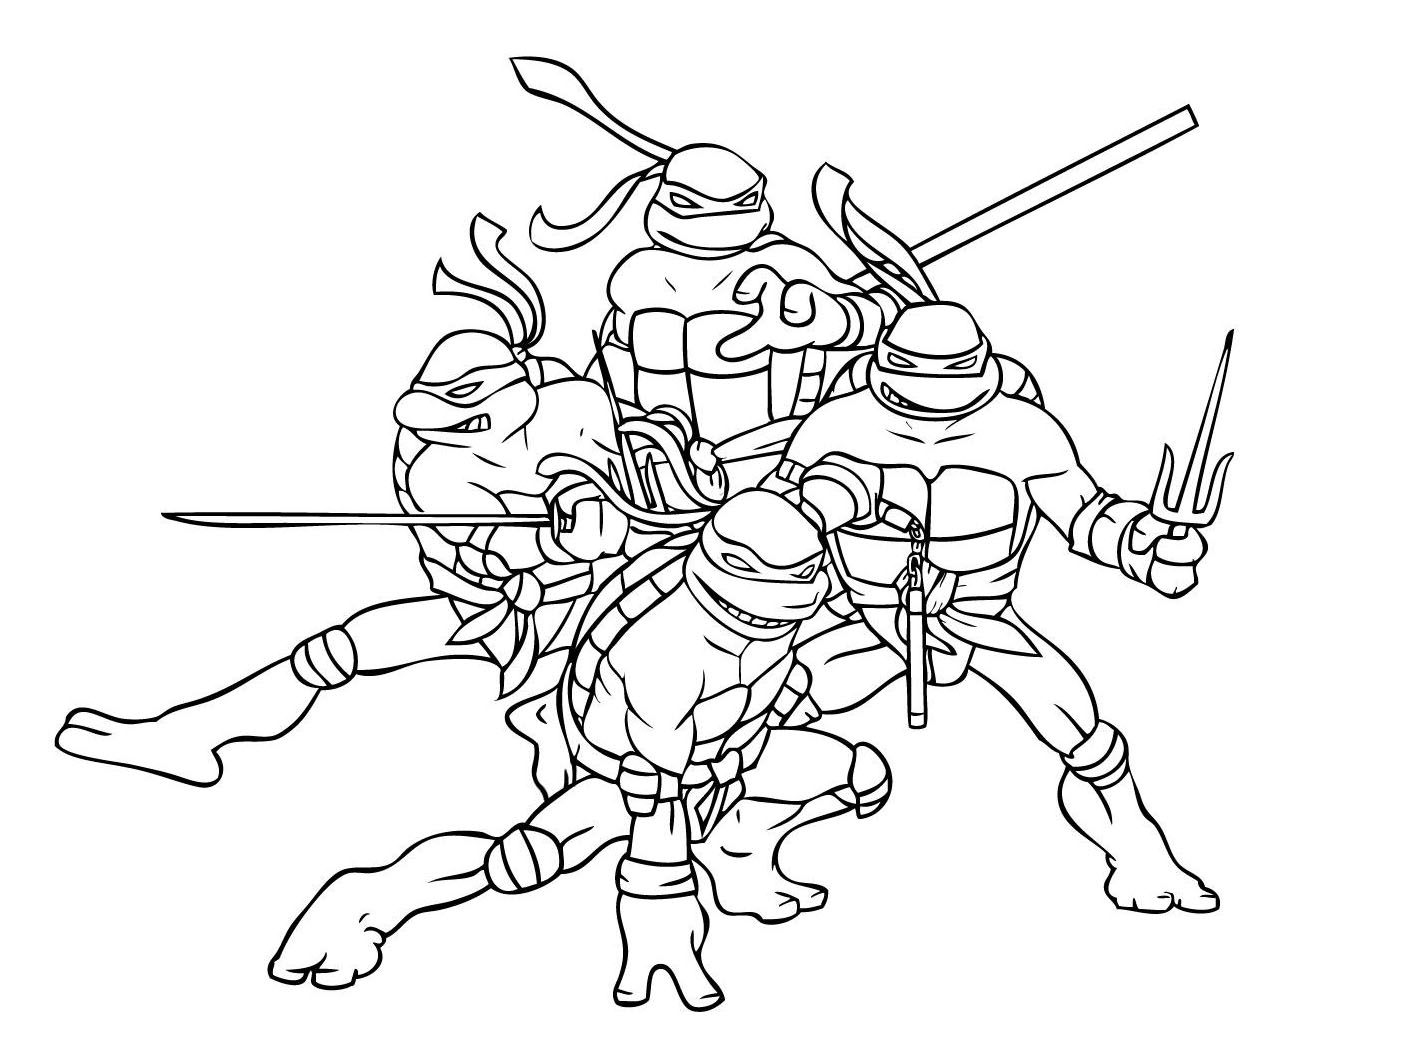 Tortue ninja 1 coloriage tortues ninja coloriages pour - Dessin anime ninja ...